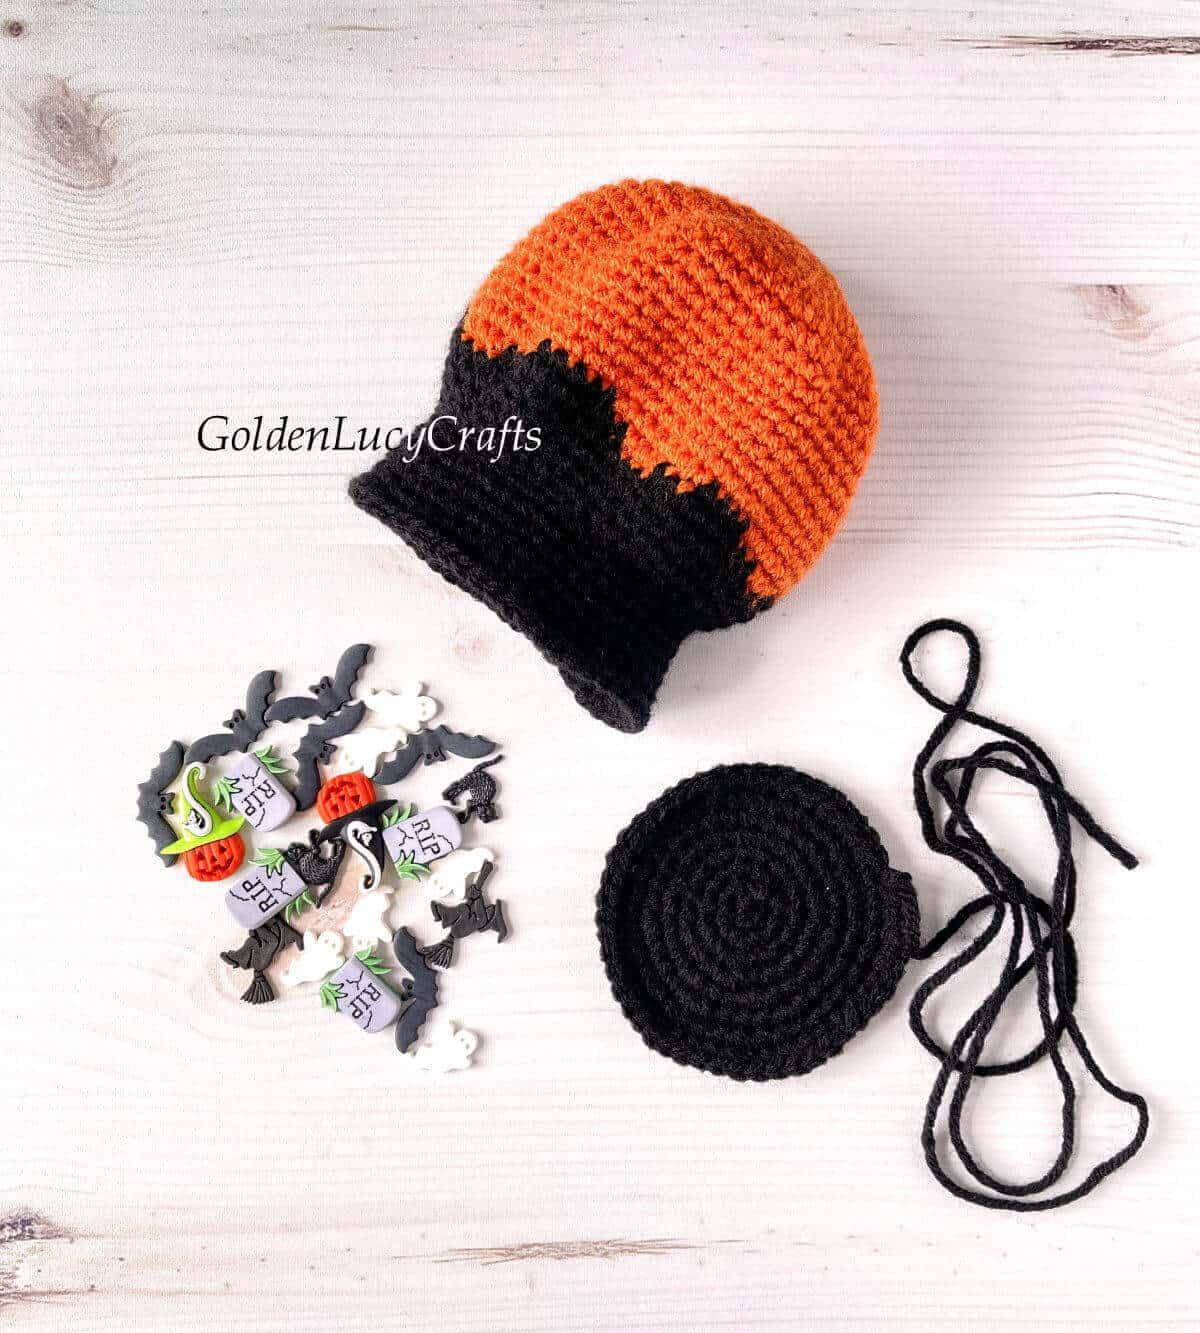 Parts of crocheted snow globe, Halloween themed craft buttons.